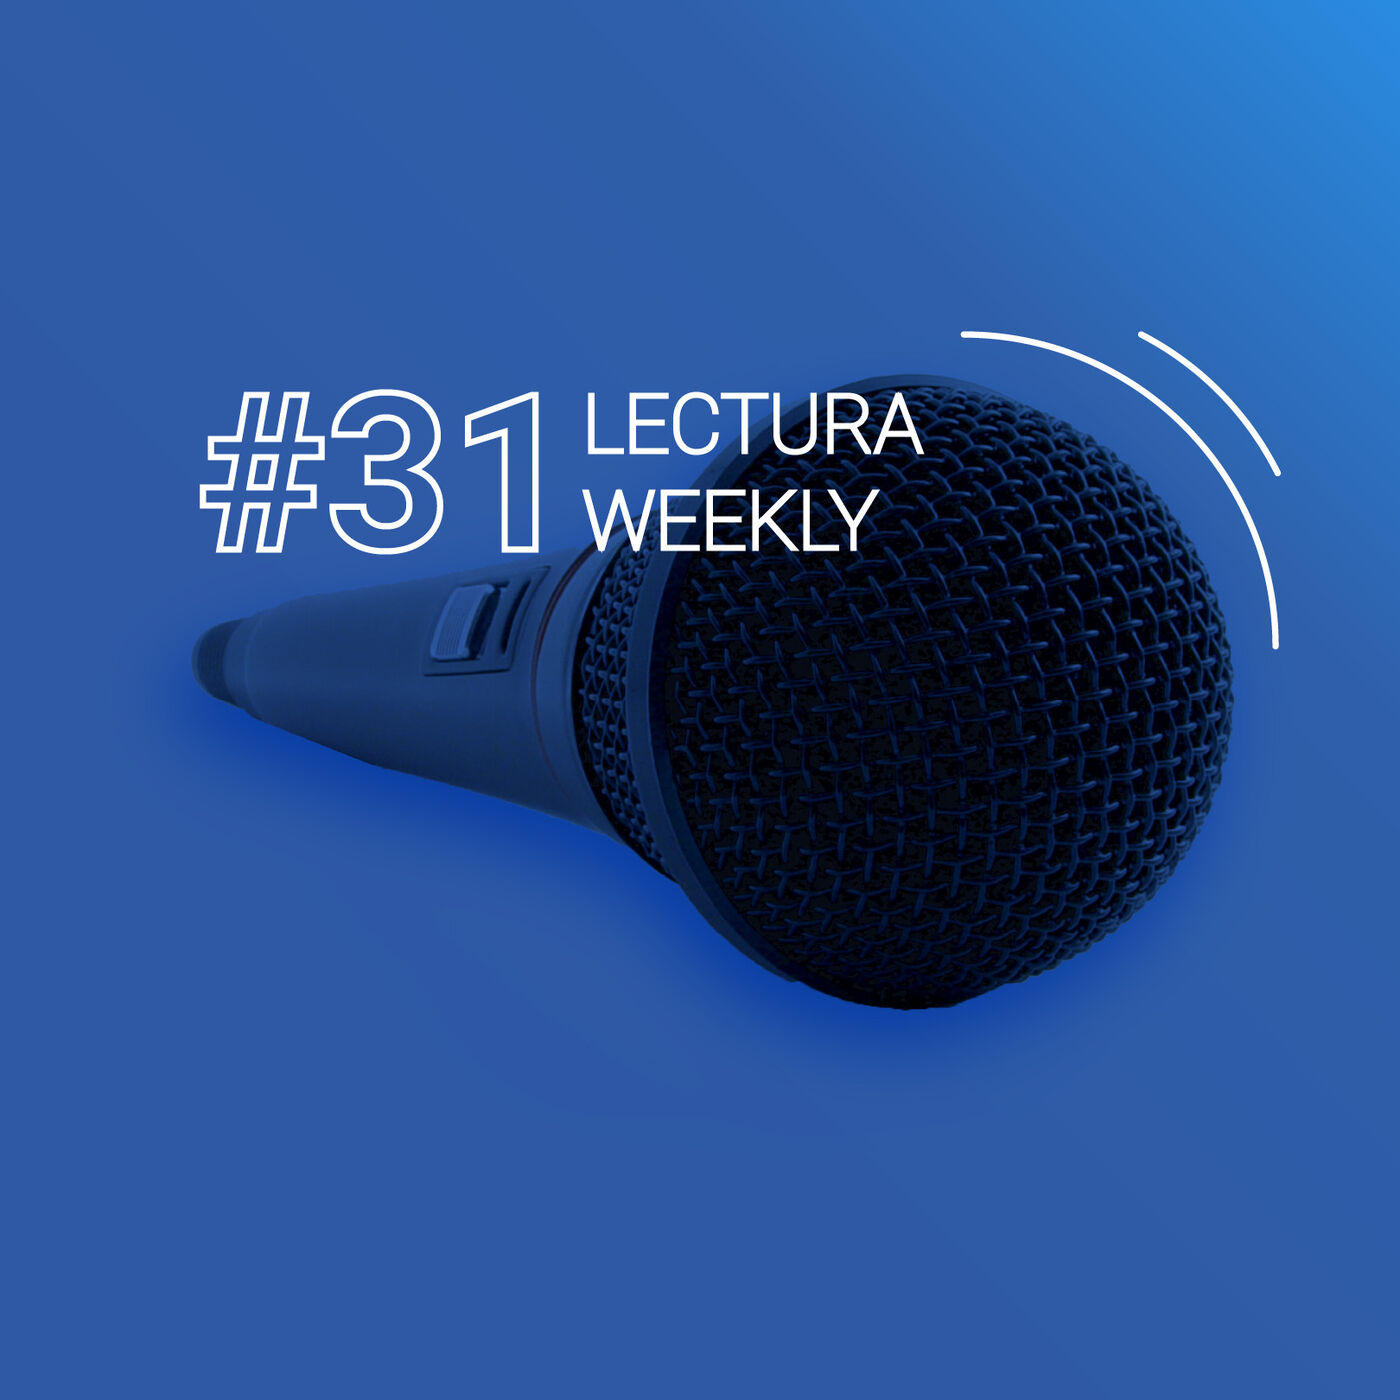 Lectura Weekly Podcasts: Week 31